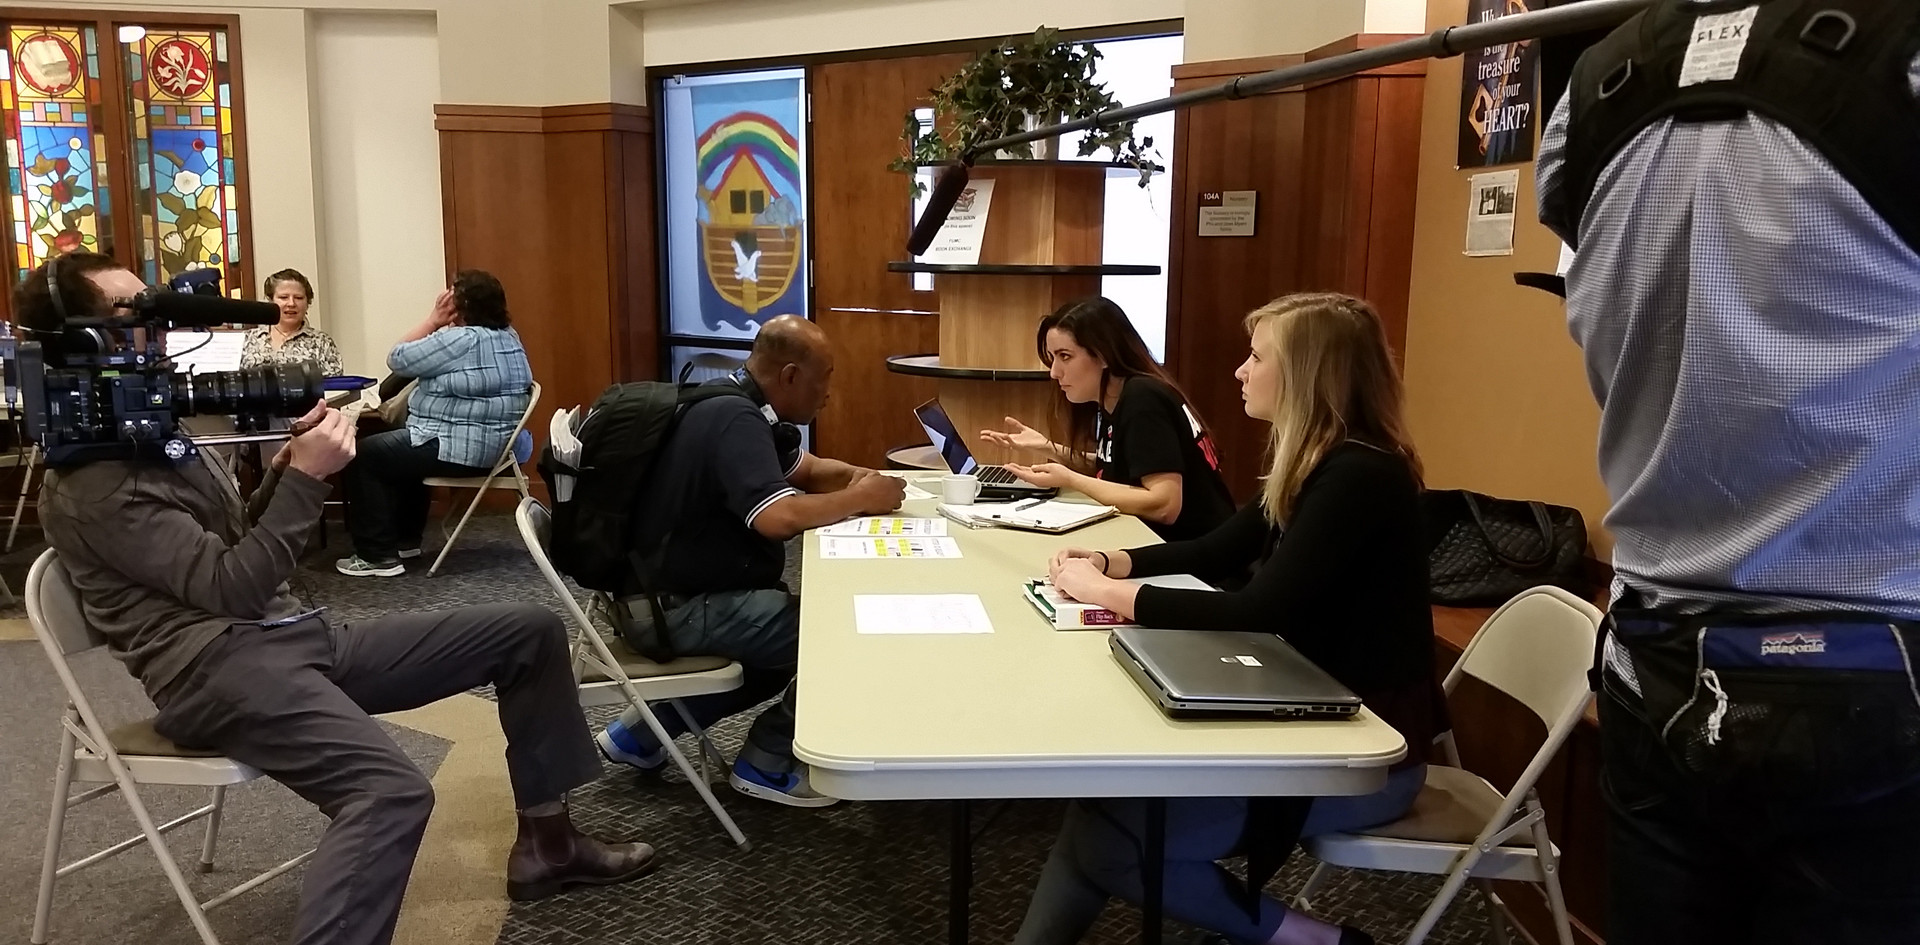 Molly McGrath Working at VoteRiders